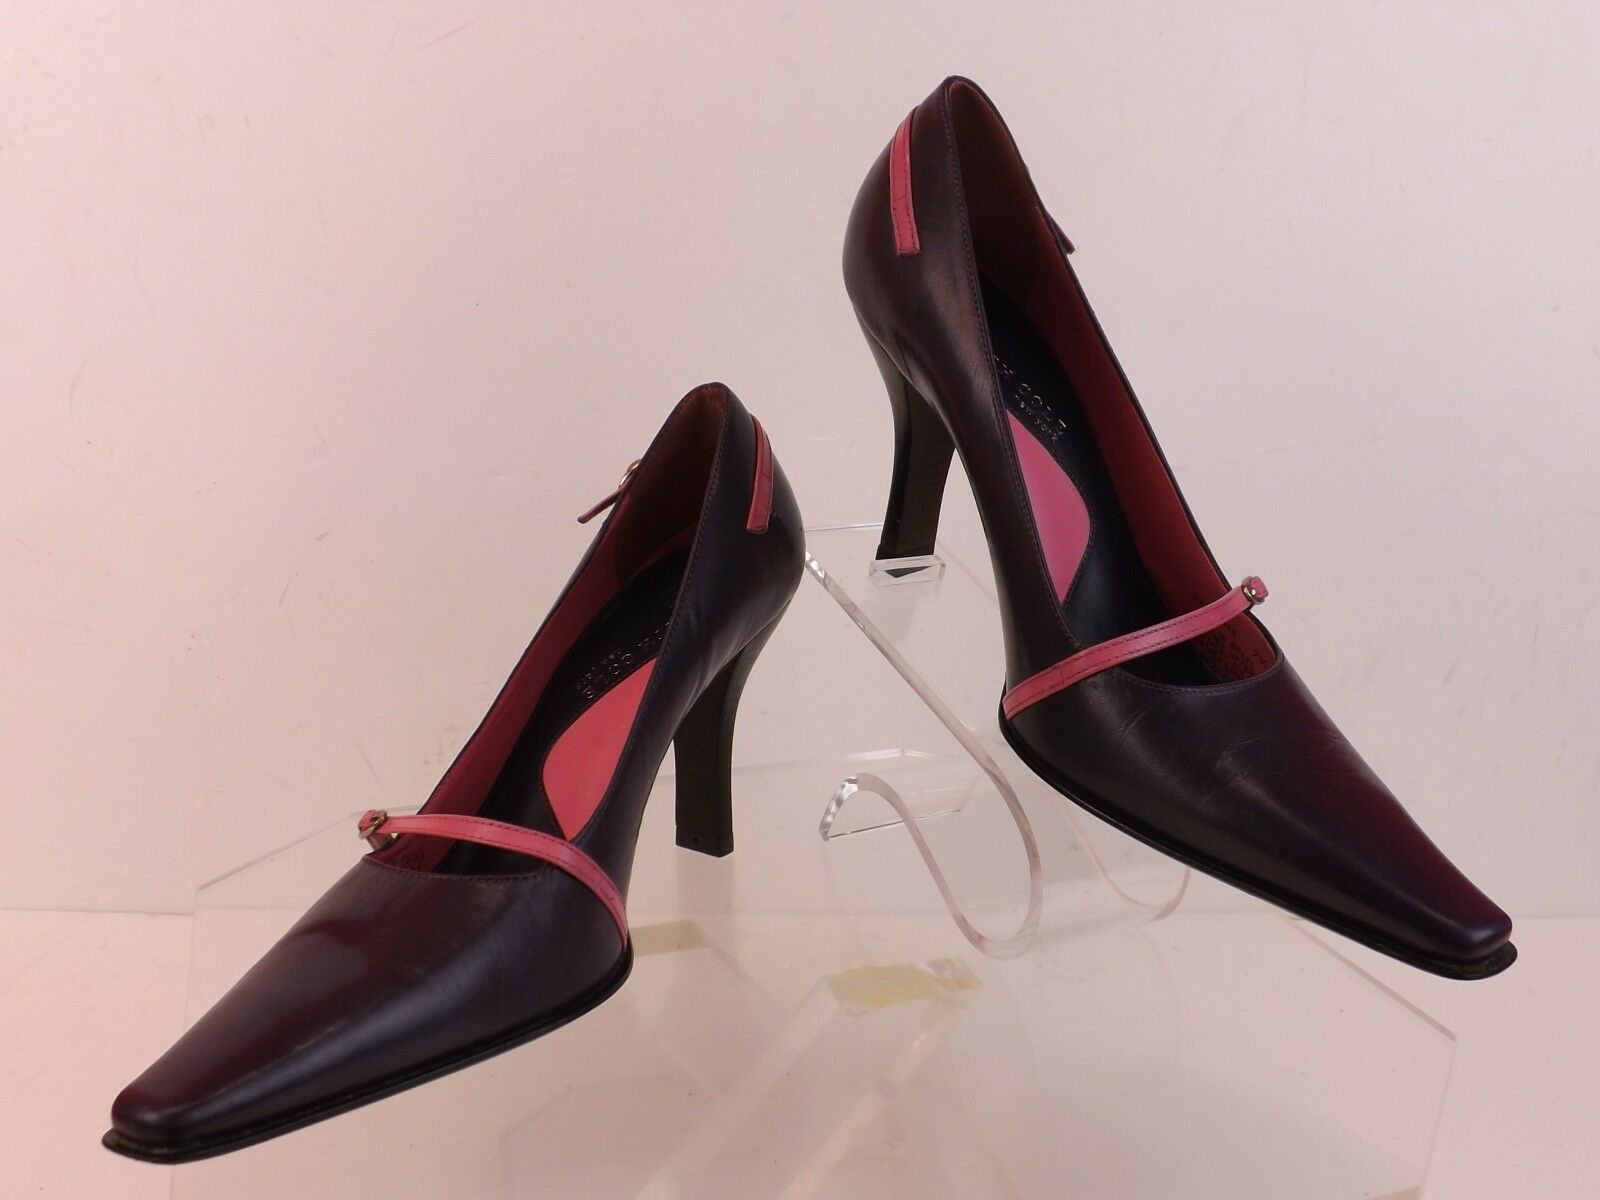 NWB KENNETH KENNETH KENNETH COLE PURPLE LEATHER POINTED TOE PINK LTH BELTED PUMPS 8.5 BRAZIL 3196fc